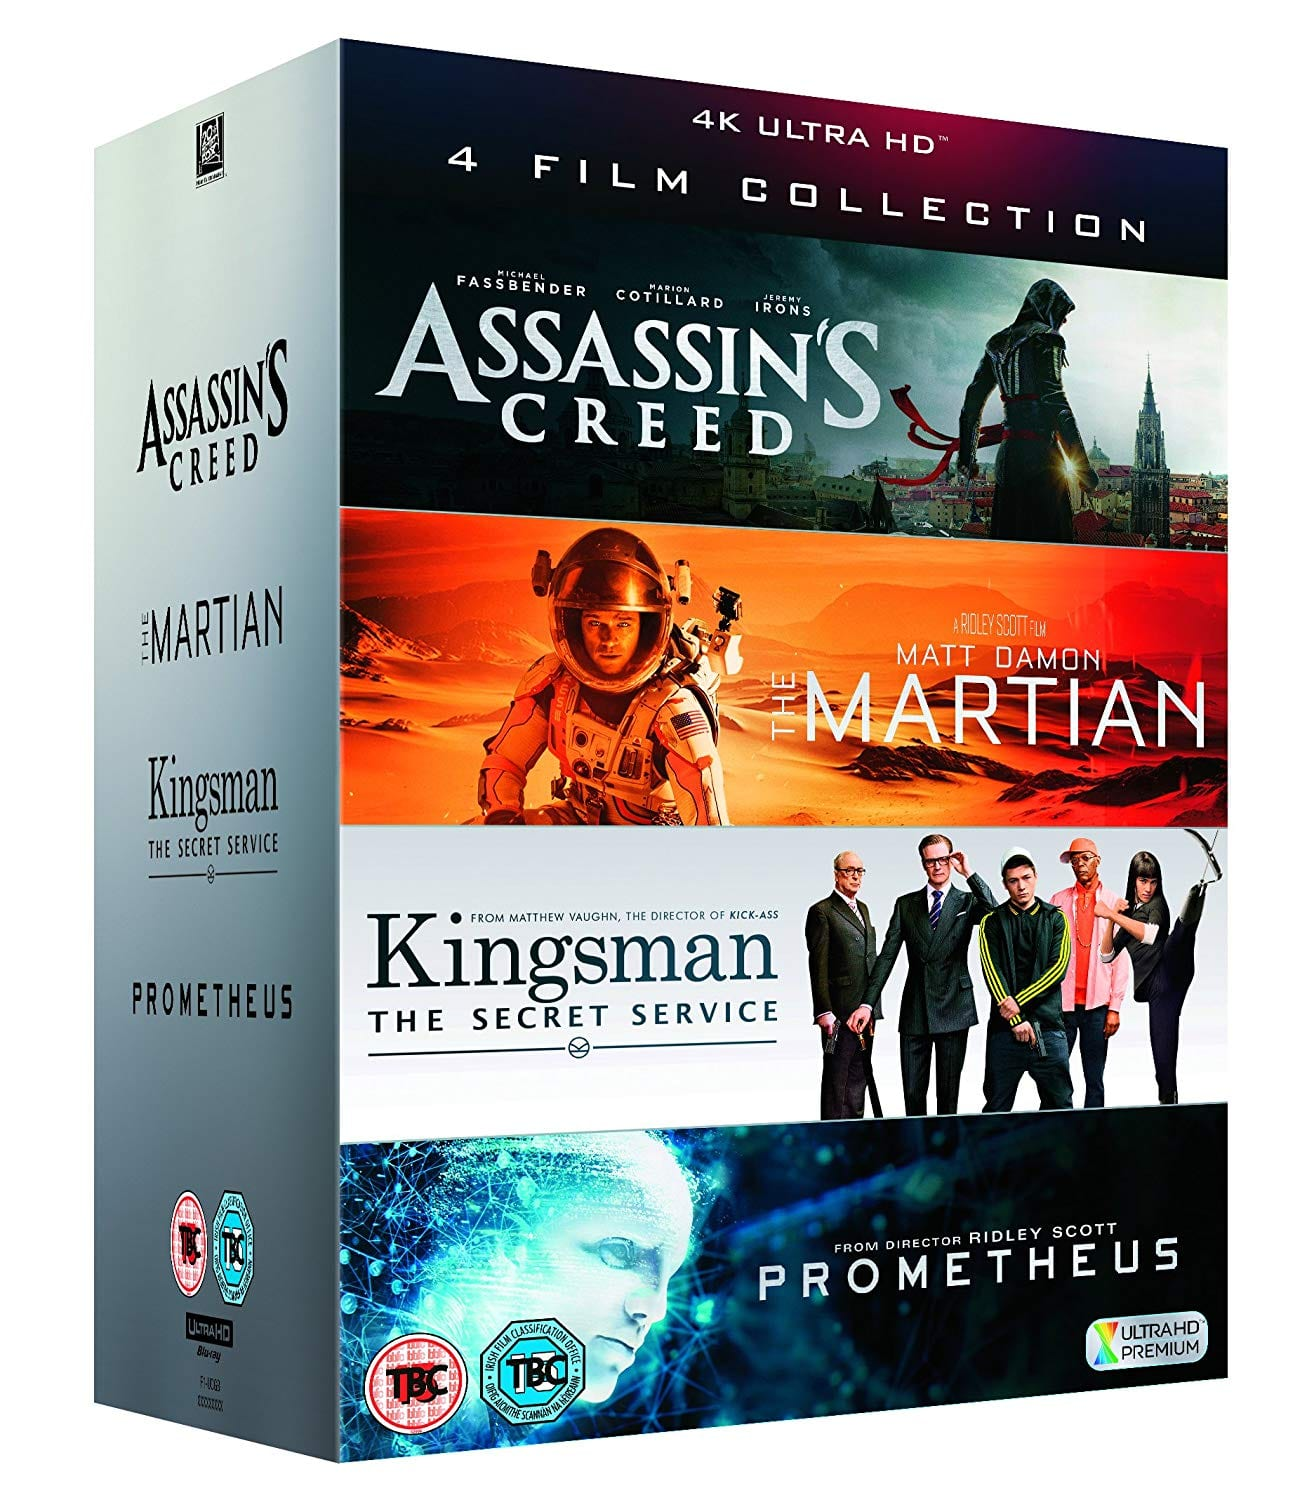 The Martian: Extended Edition + Kingsman: The Secret Service + Prometheus + Assassin's Creed (4K Ultra HD + Blu-ray) $28.37 Shipped @ Amazon UK